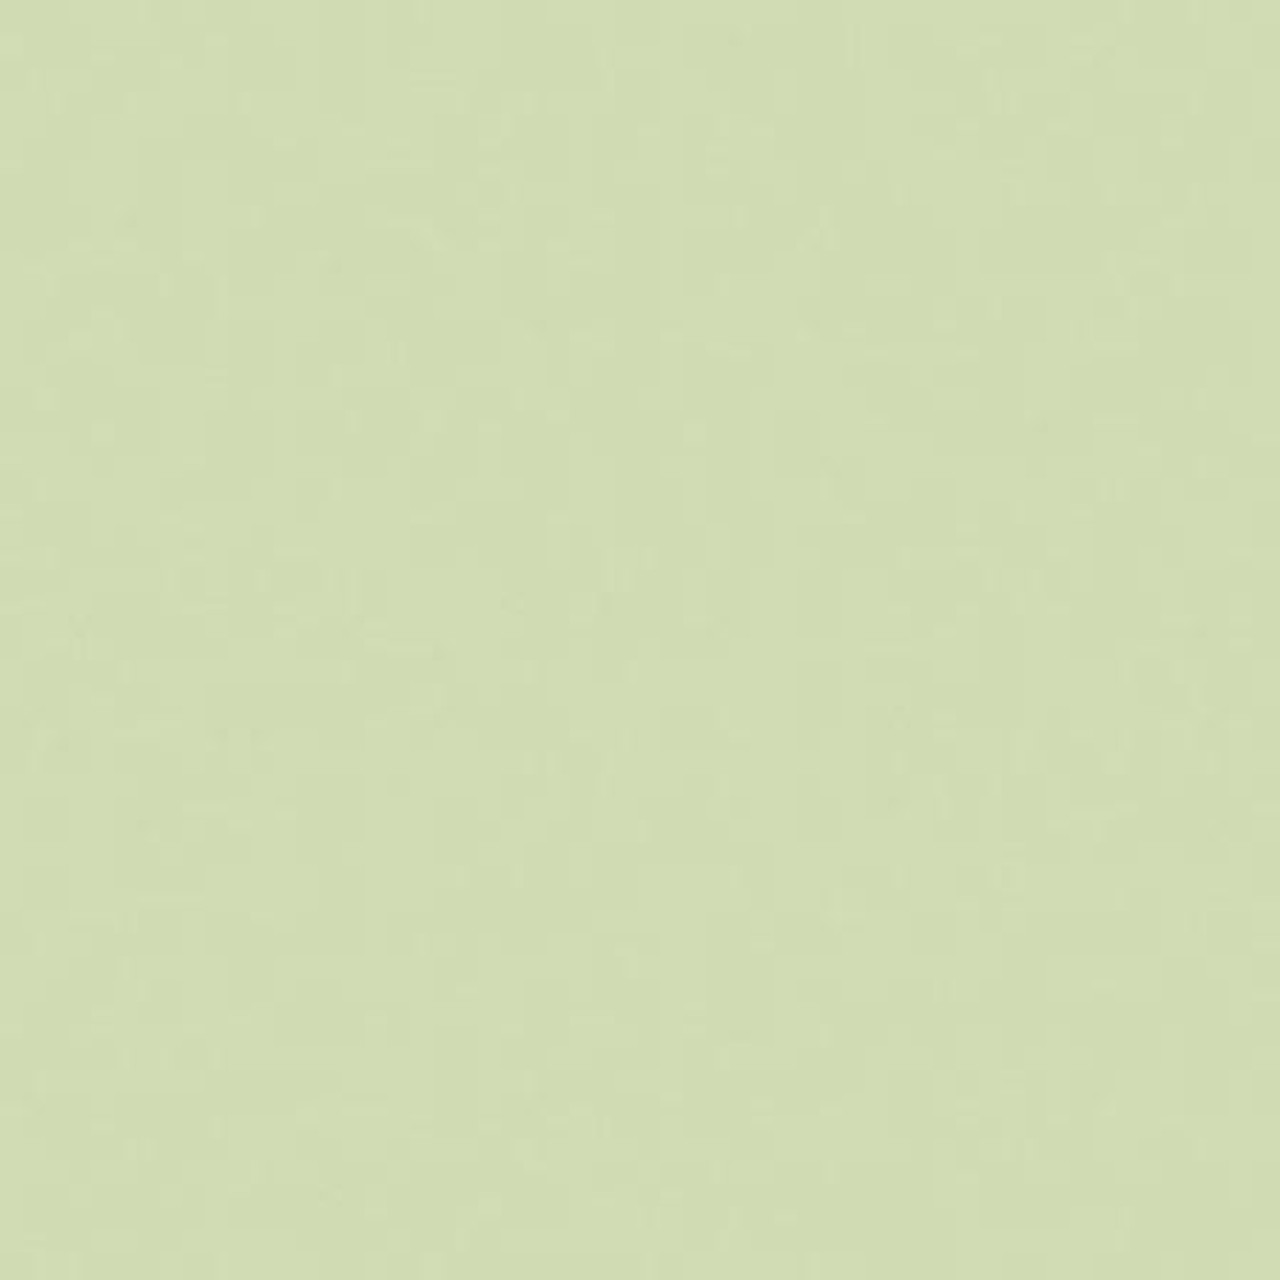 #0087 Rosco Gels Roscolux Pale Yellow Green, 20x24""